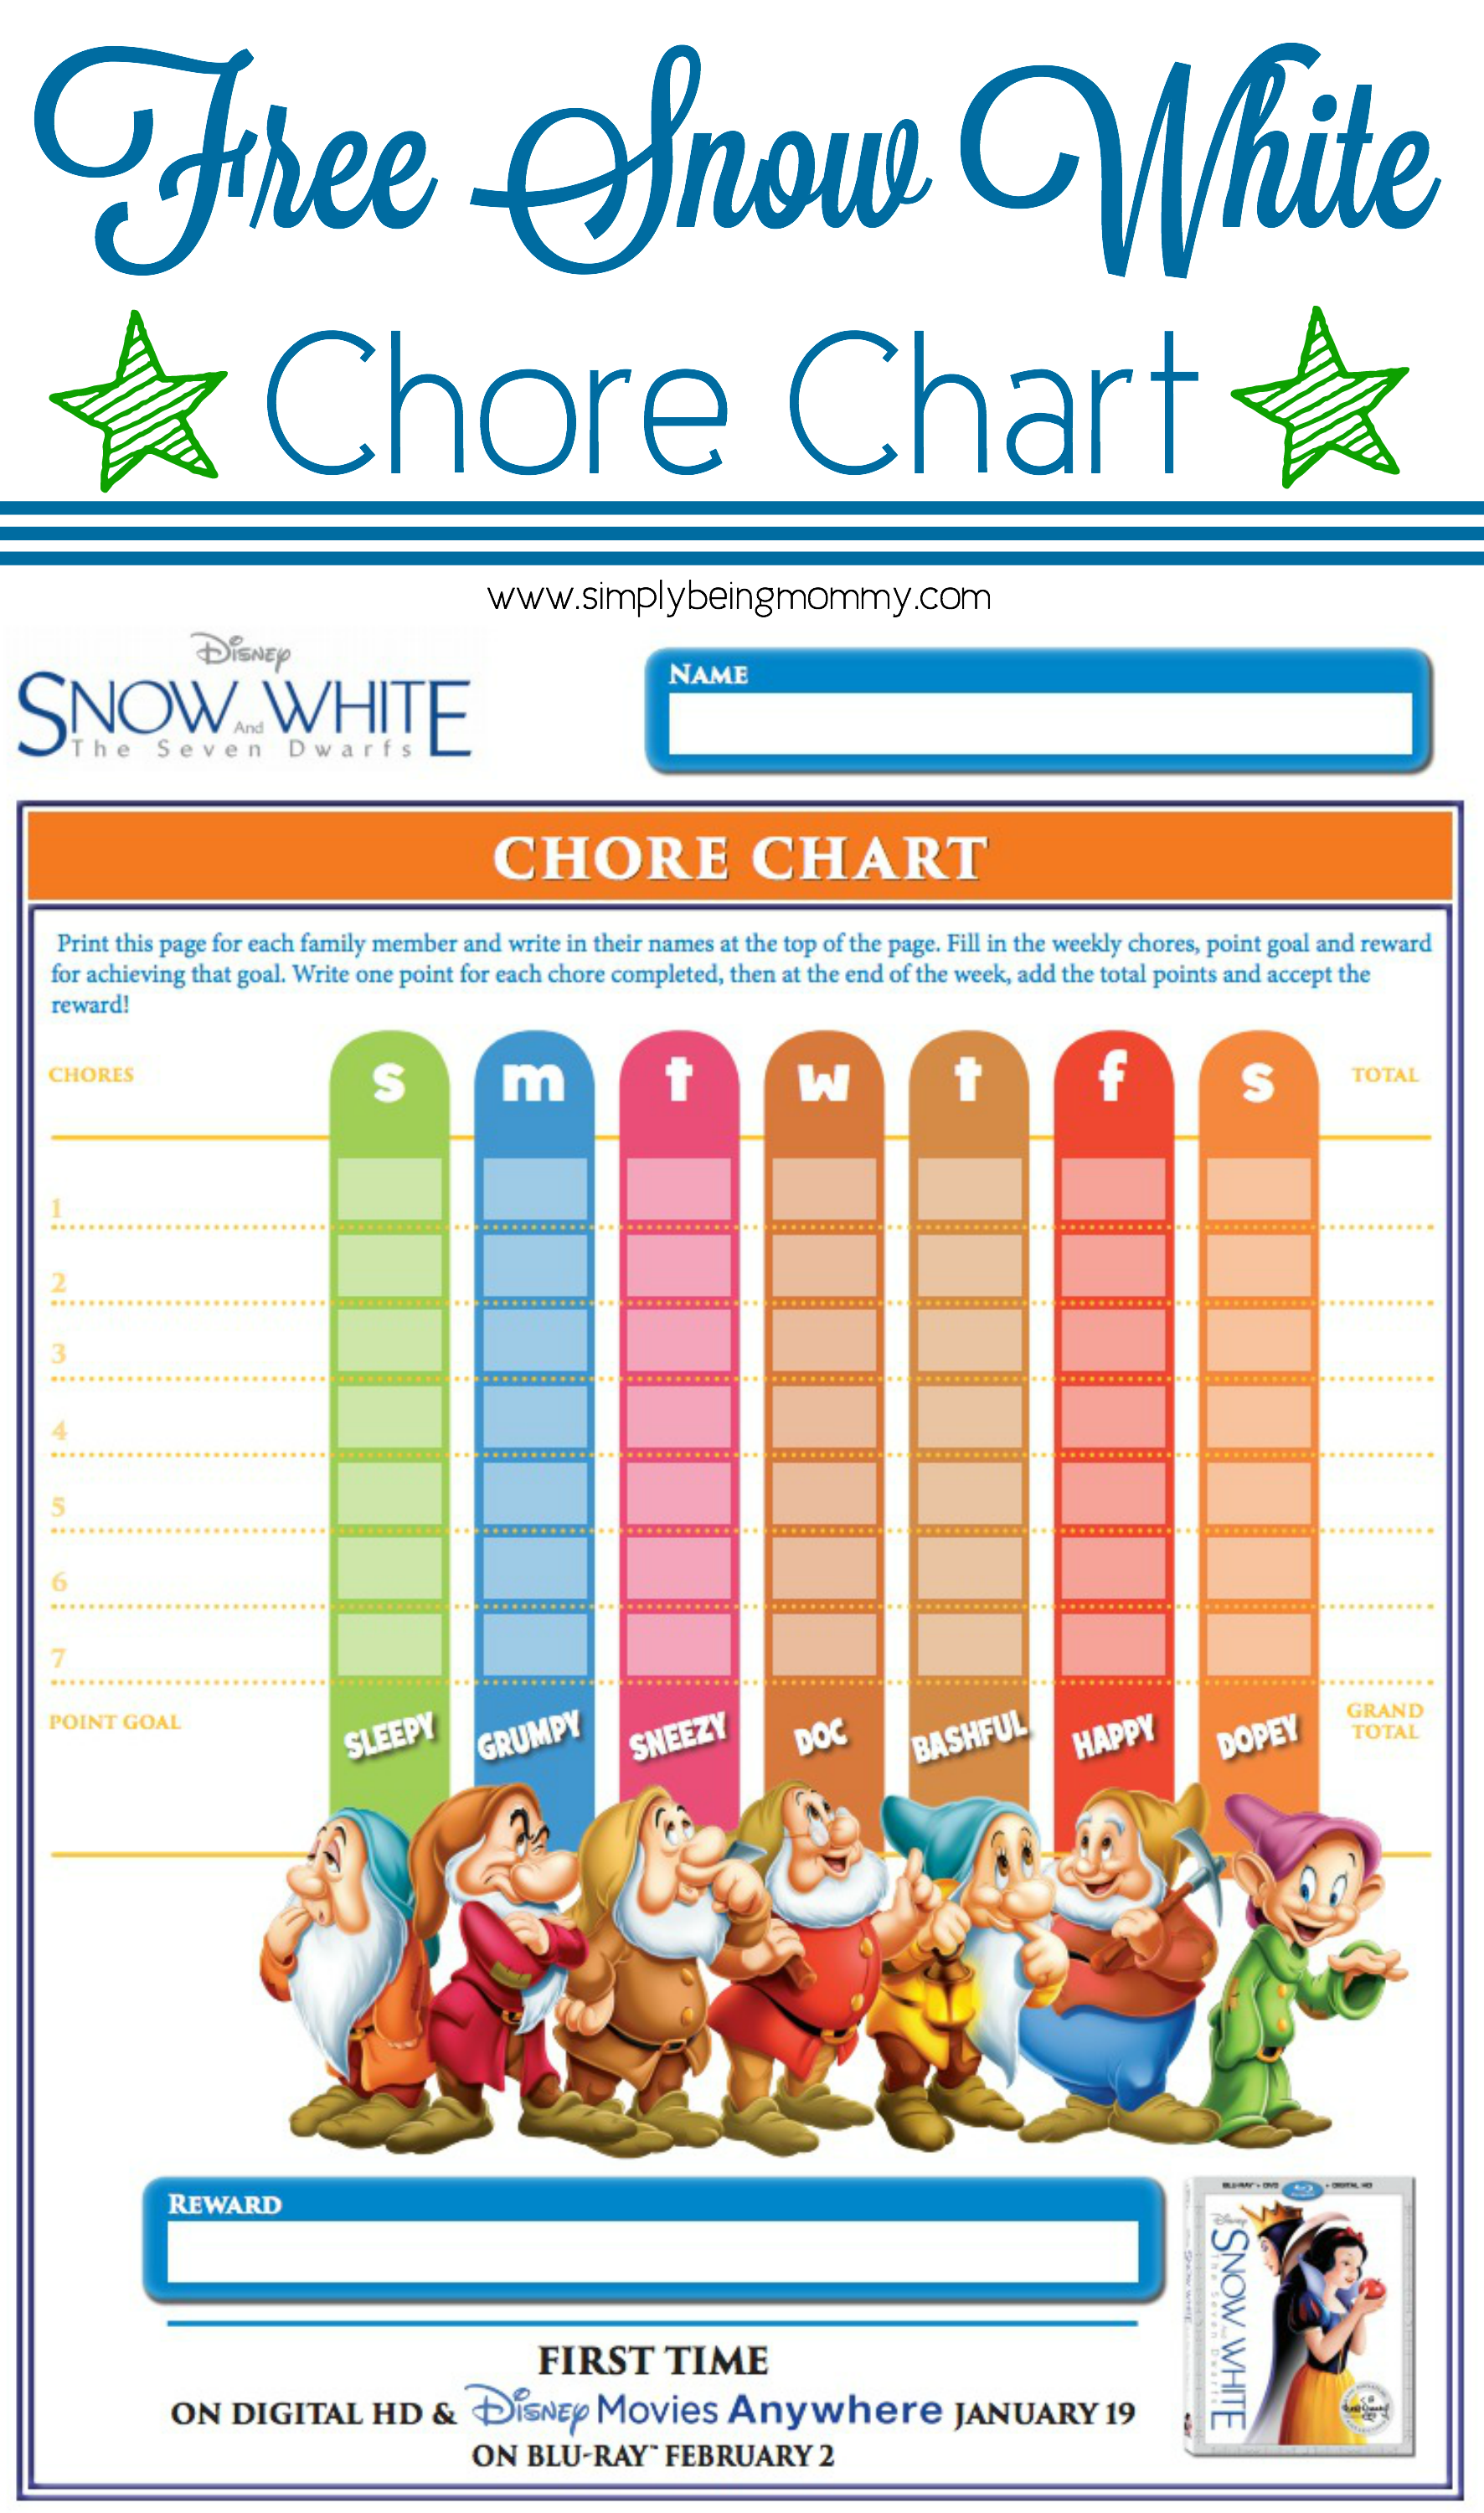 Snow white chore chart simply being mommy nvjuhfo Image collections